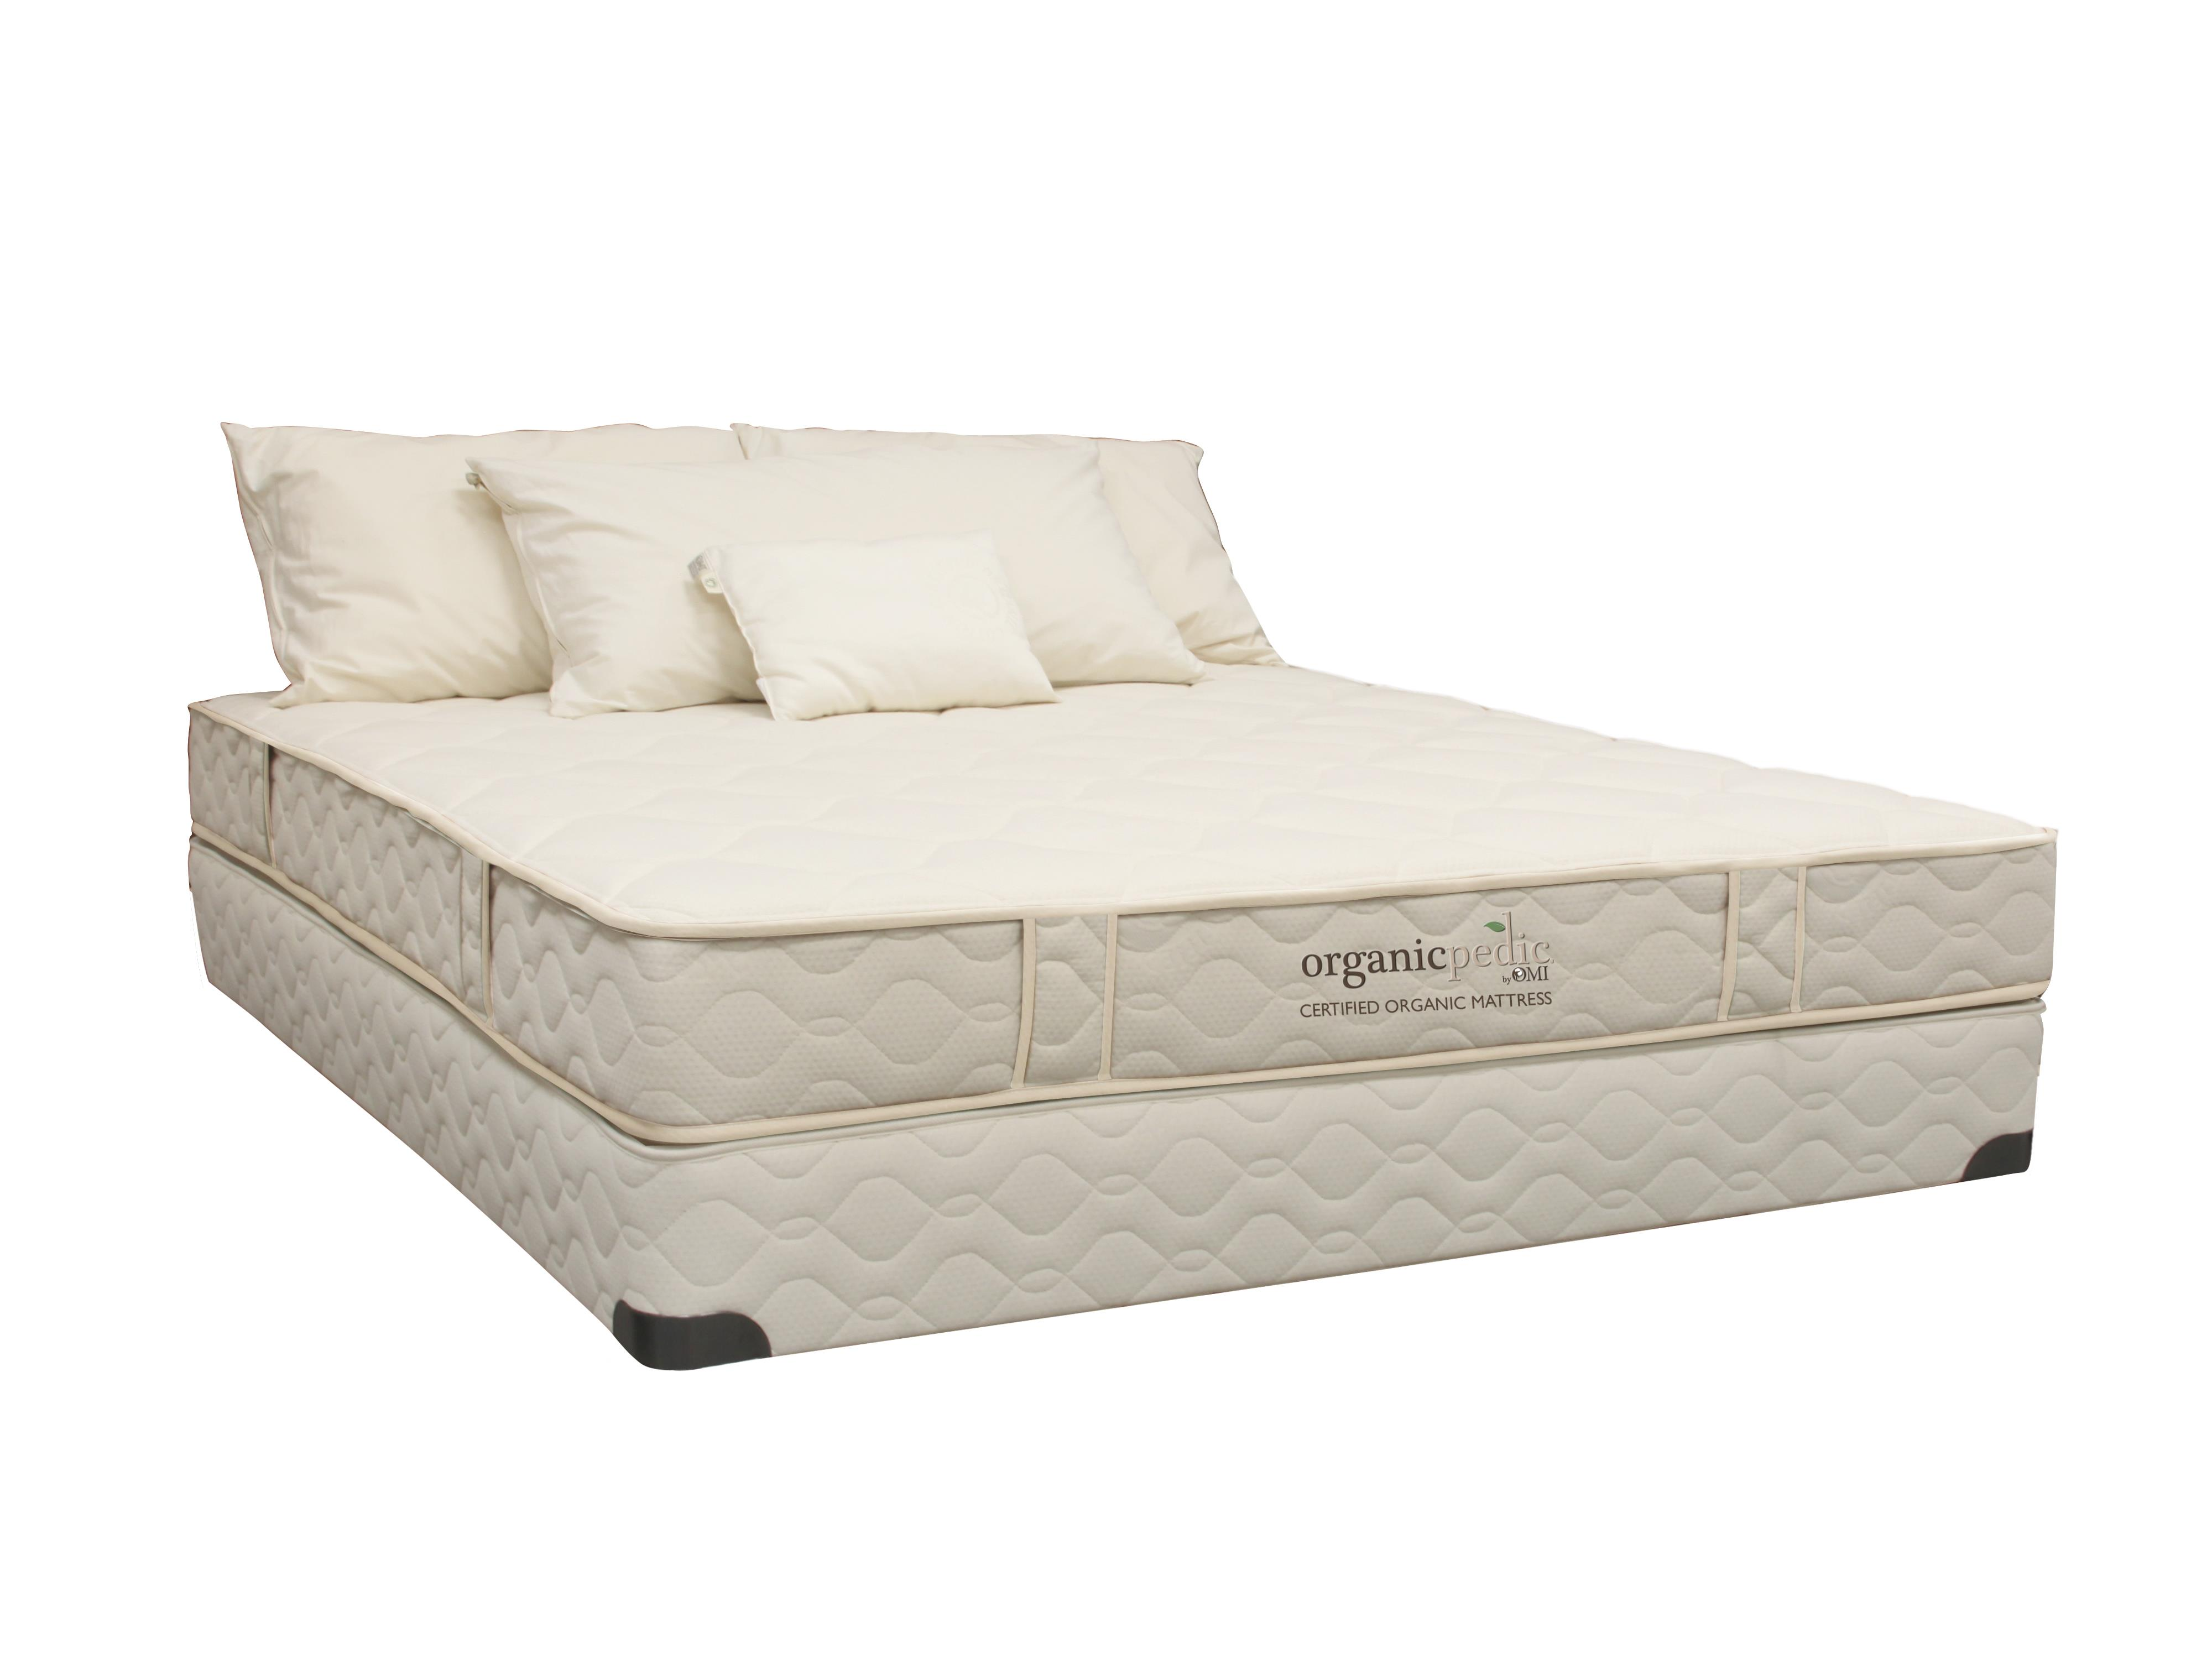 "Organic Mattresses, Inc. (OMI) OrganicPedic Cascade King 7.5"" Latex Mattress - Item Number: 66CASCADEO-2N"